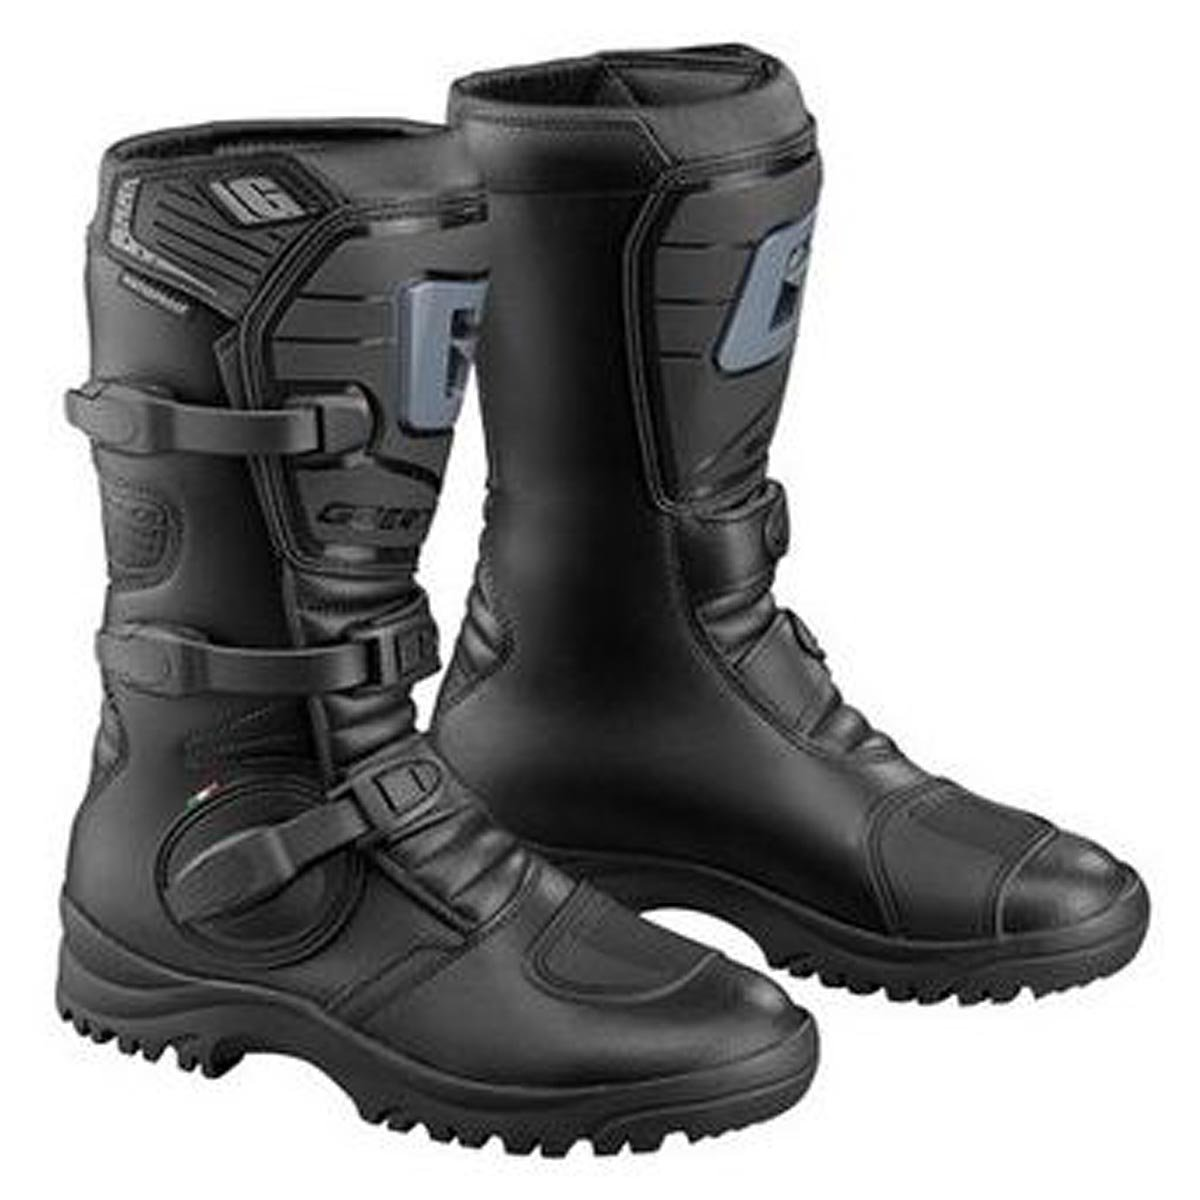 Gaerne G-Adventure Mens Black Motocross Boots - 11